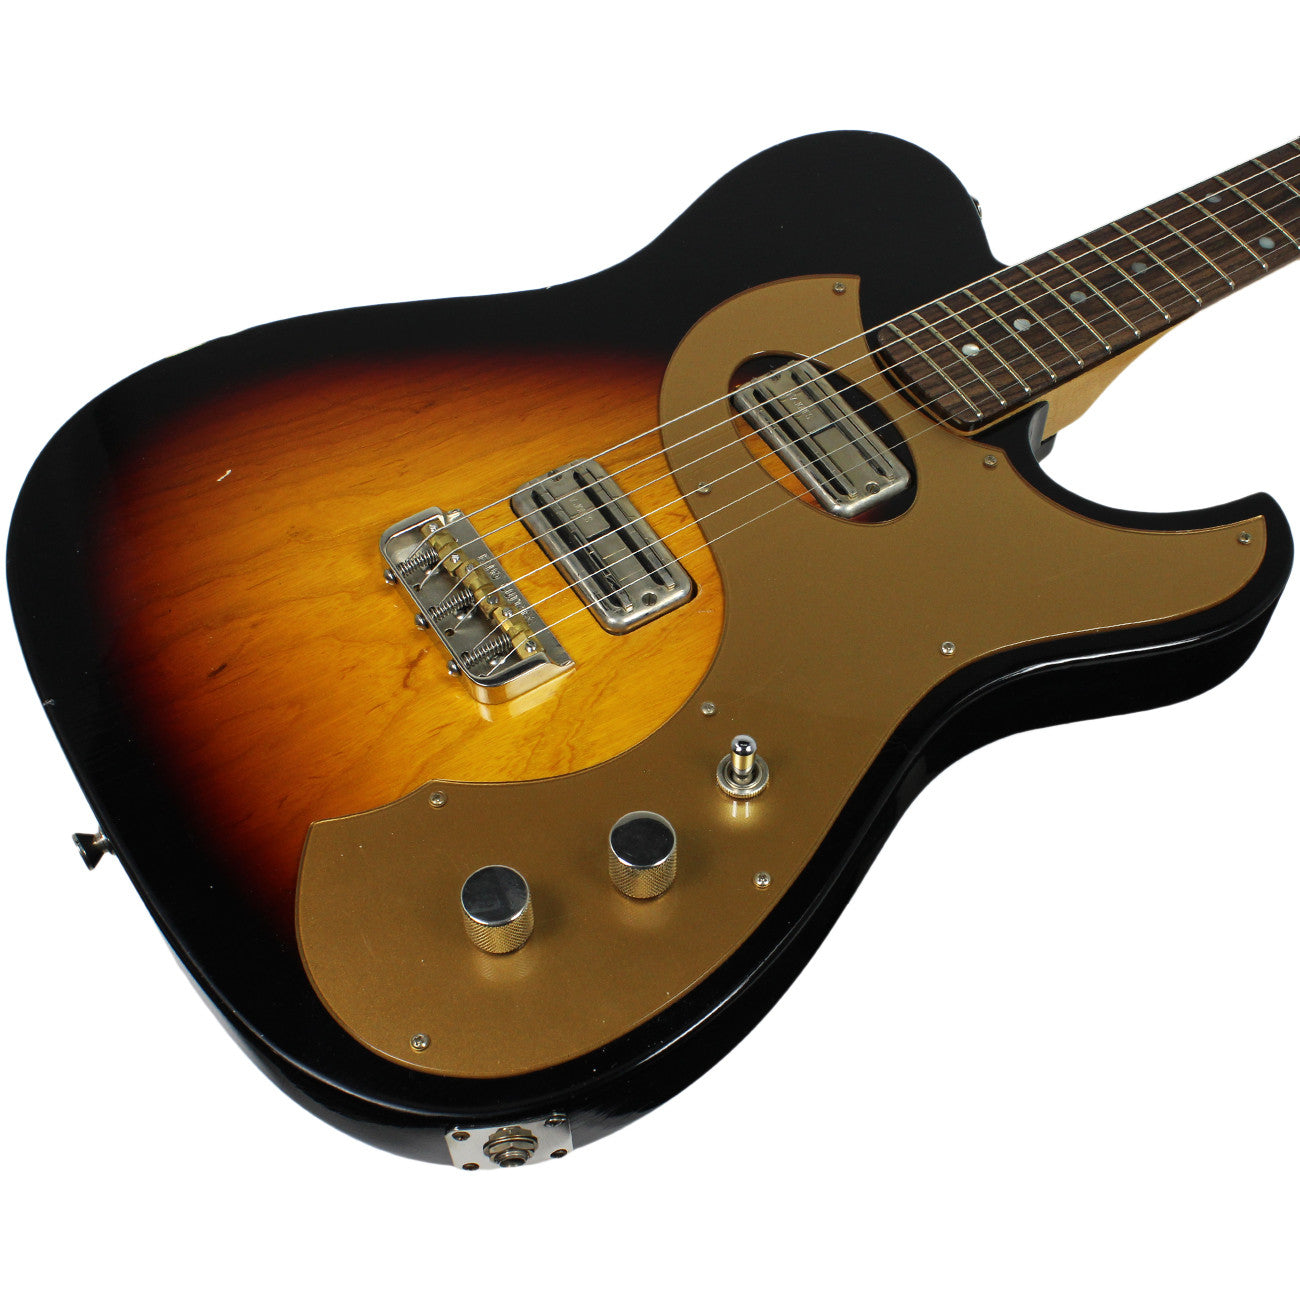 Fano TC6 Guitar in 3-Tone Sunburst | Humbucker Music